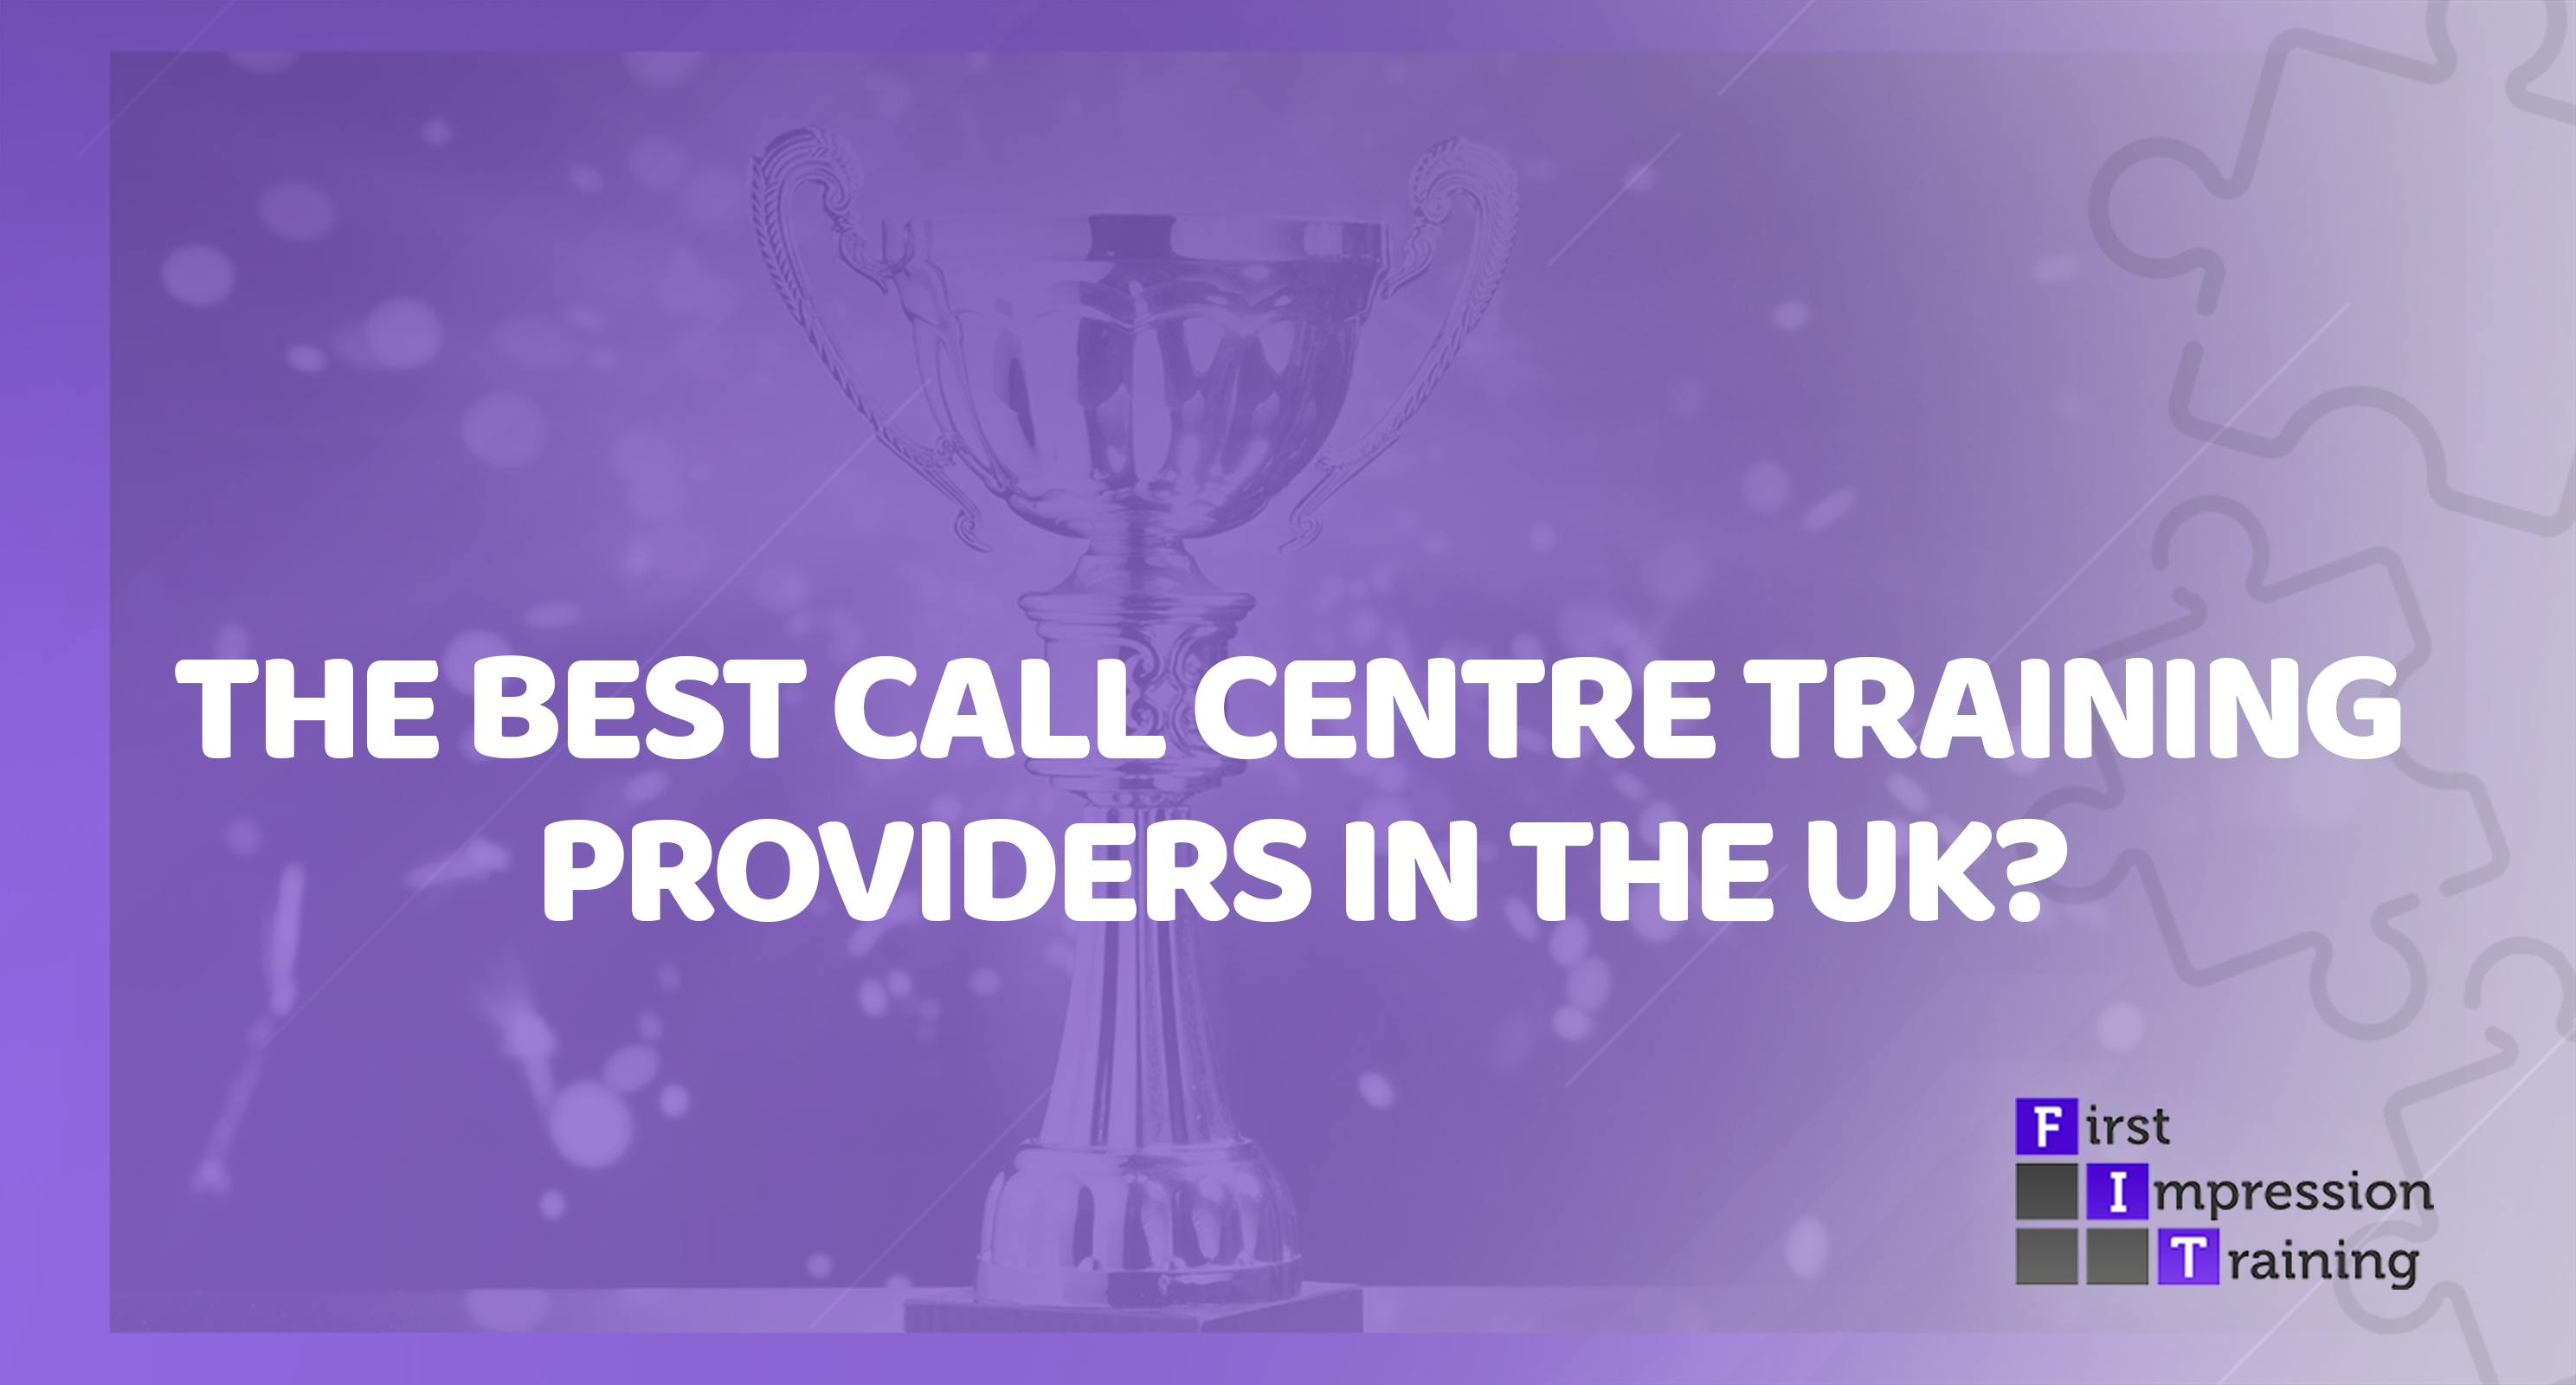 Who are the best Call Centre Training Providers in the UK?